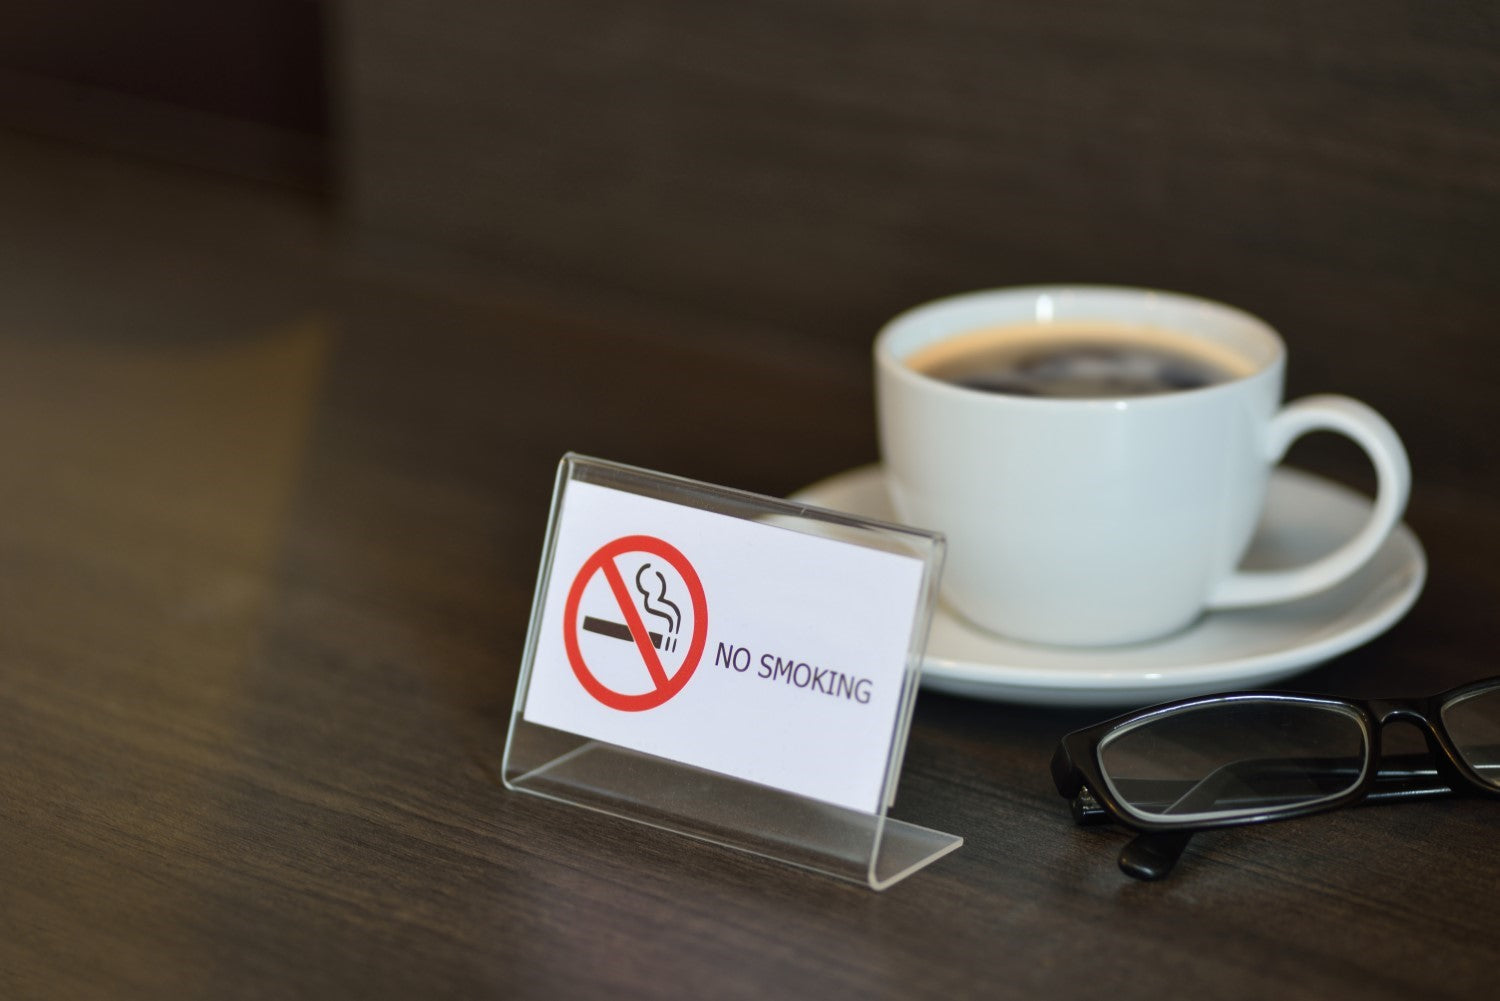 cup of coffee with no smoking sign